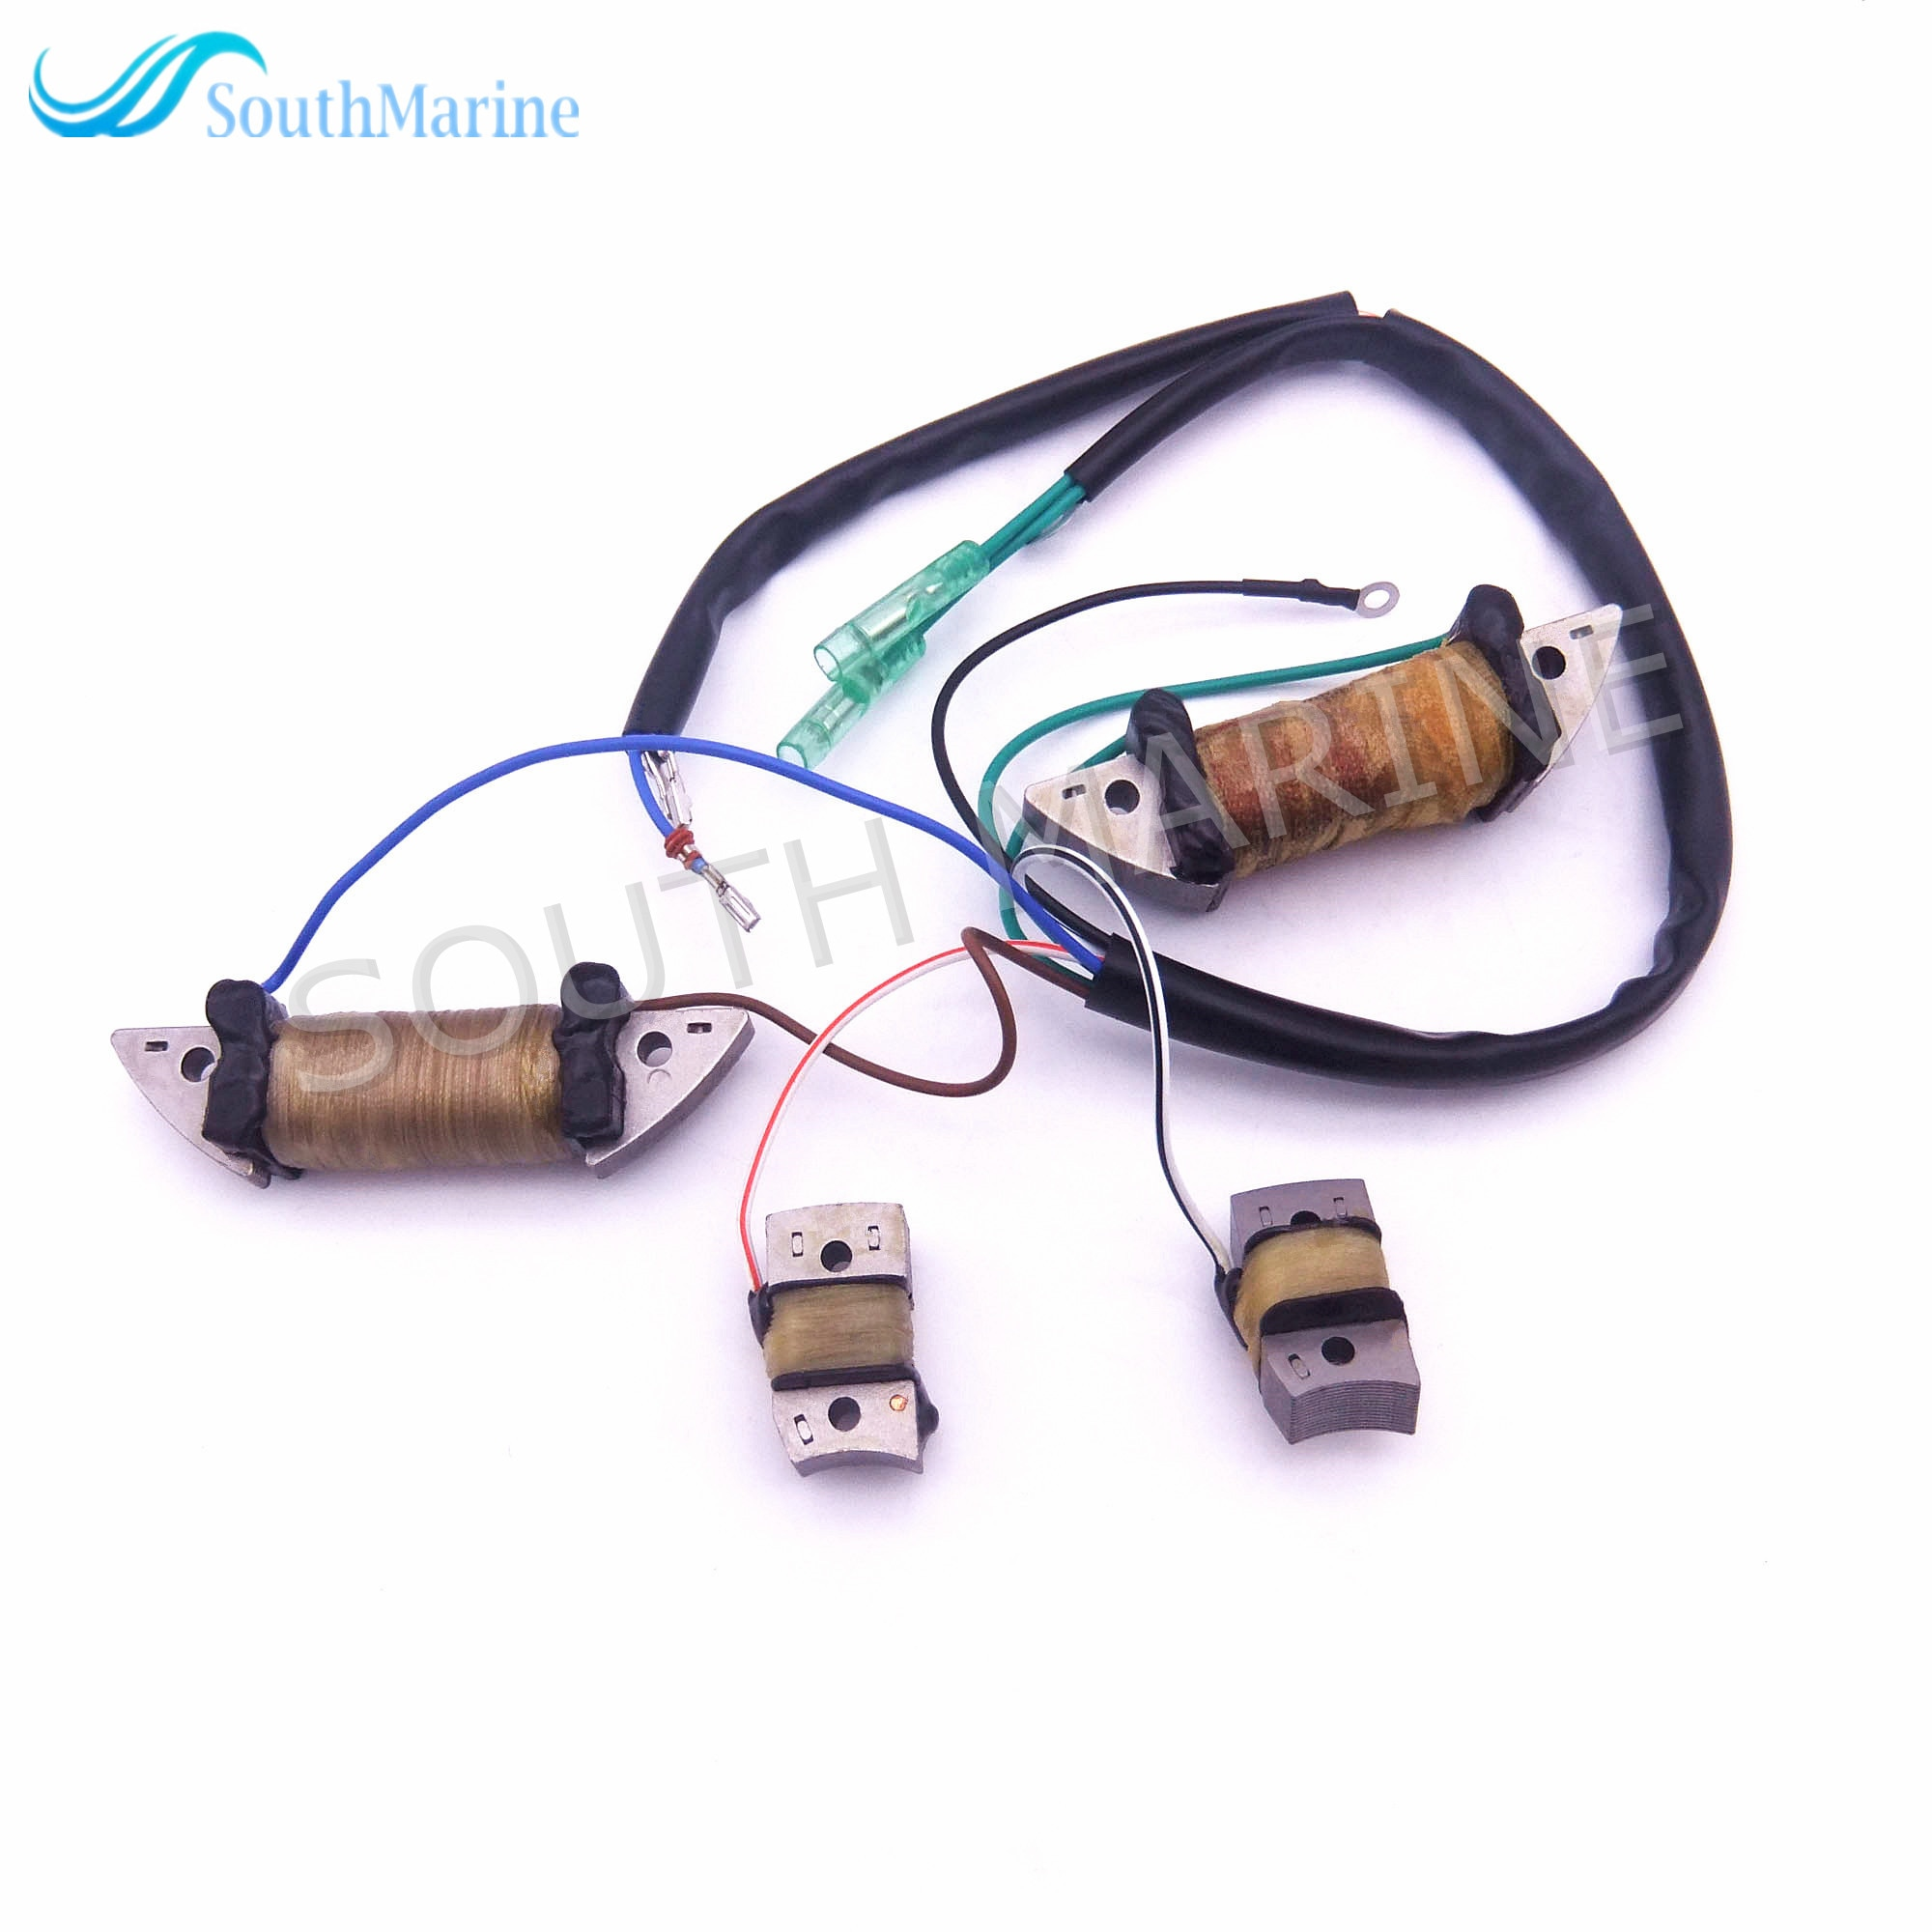 Boat Motor 6F5-85520-10 Charger and 6F5-85533-10 Lighting and 6F5-85580-10 6F5-85580-20 Pulser Coil